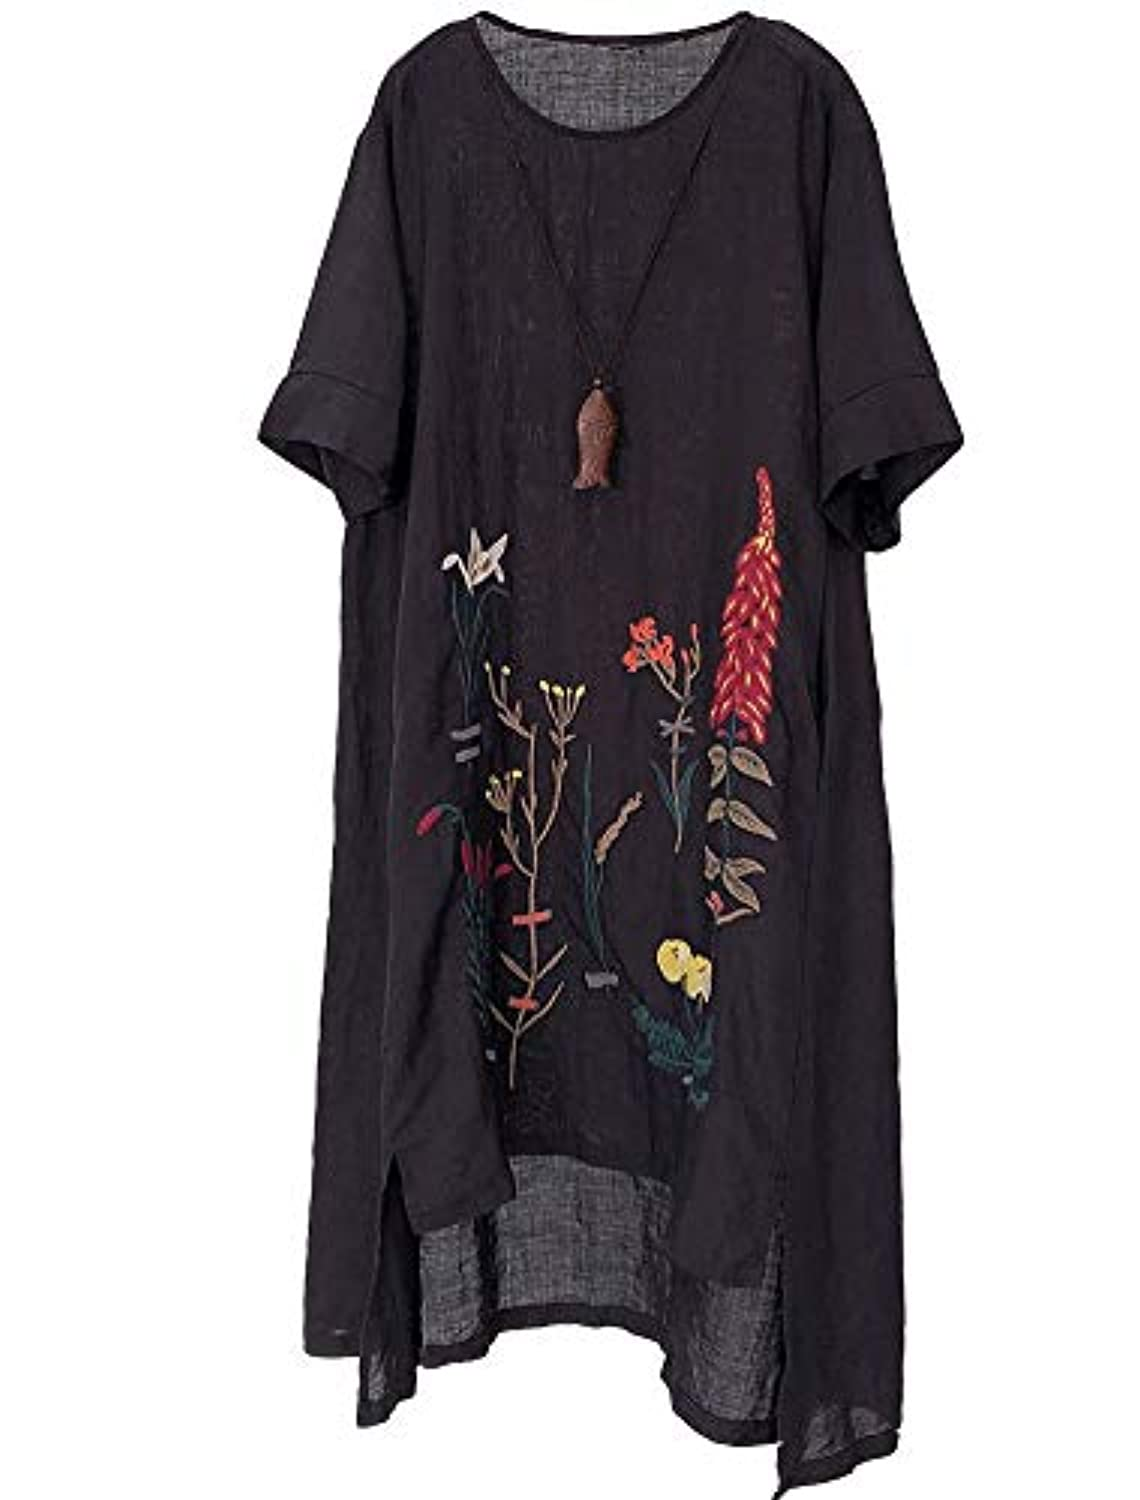 Embroidered Linen Dress Summer A-Line Sundress Hi Low Tunic Clothing